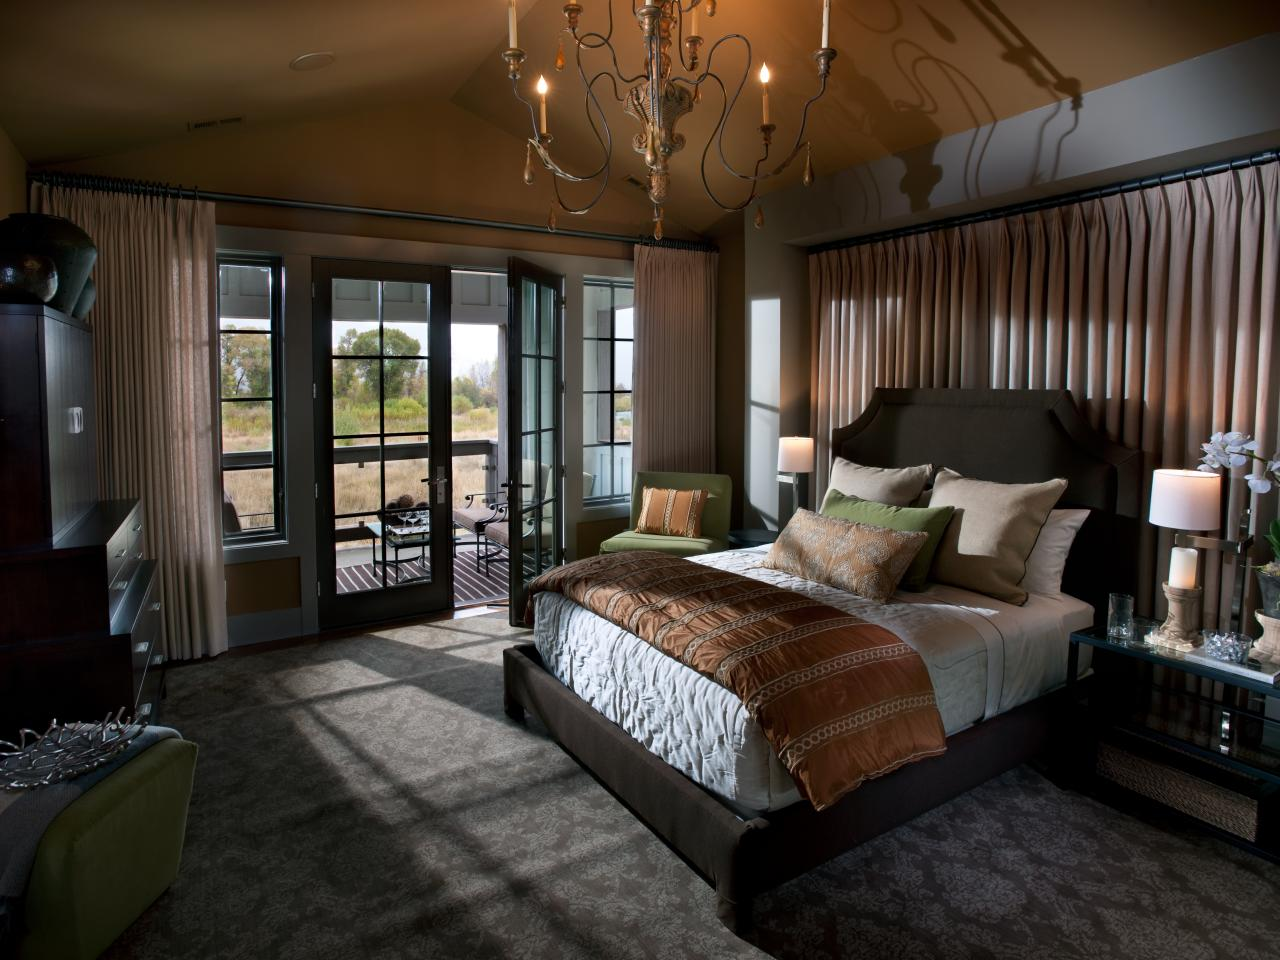 21 Incredible Master Bedrooms Design Ideas 241shares